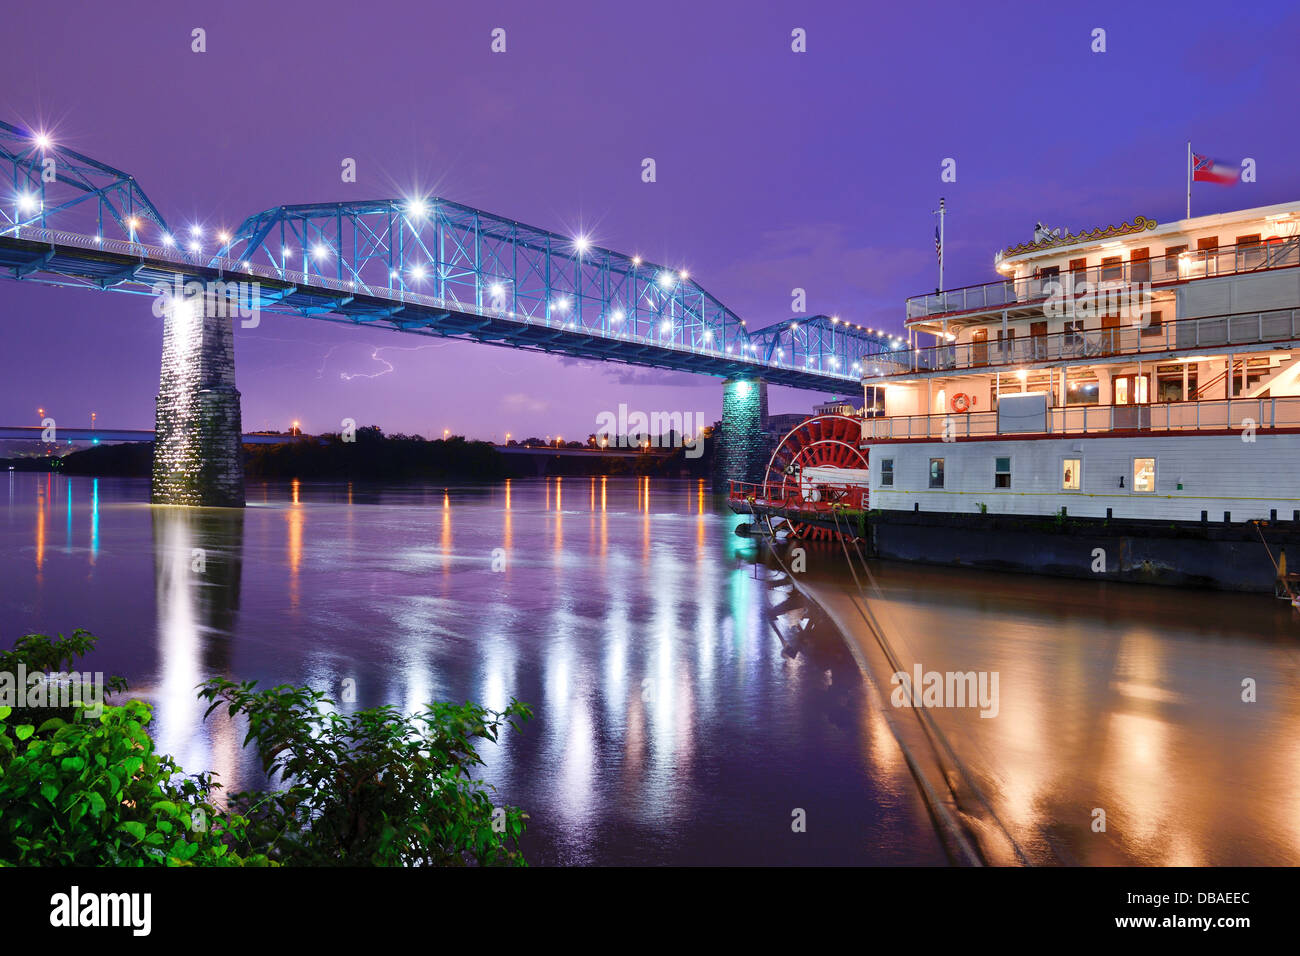 Showboat on the Tennessee River in Chattanooga, Tennessee. - Stock Image